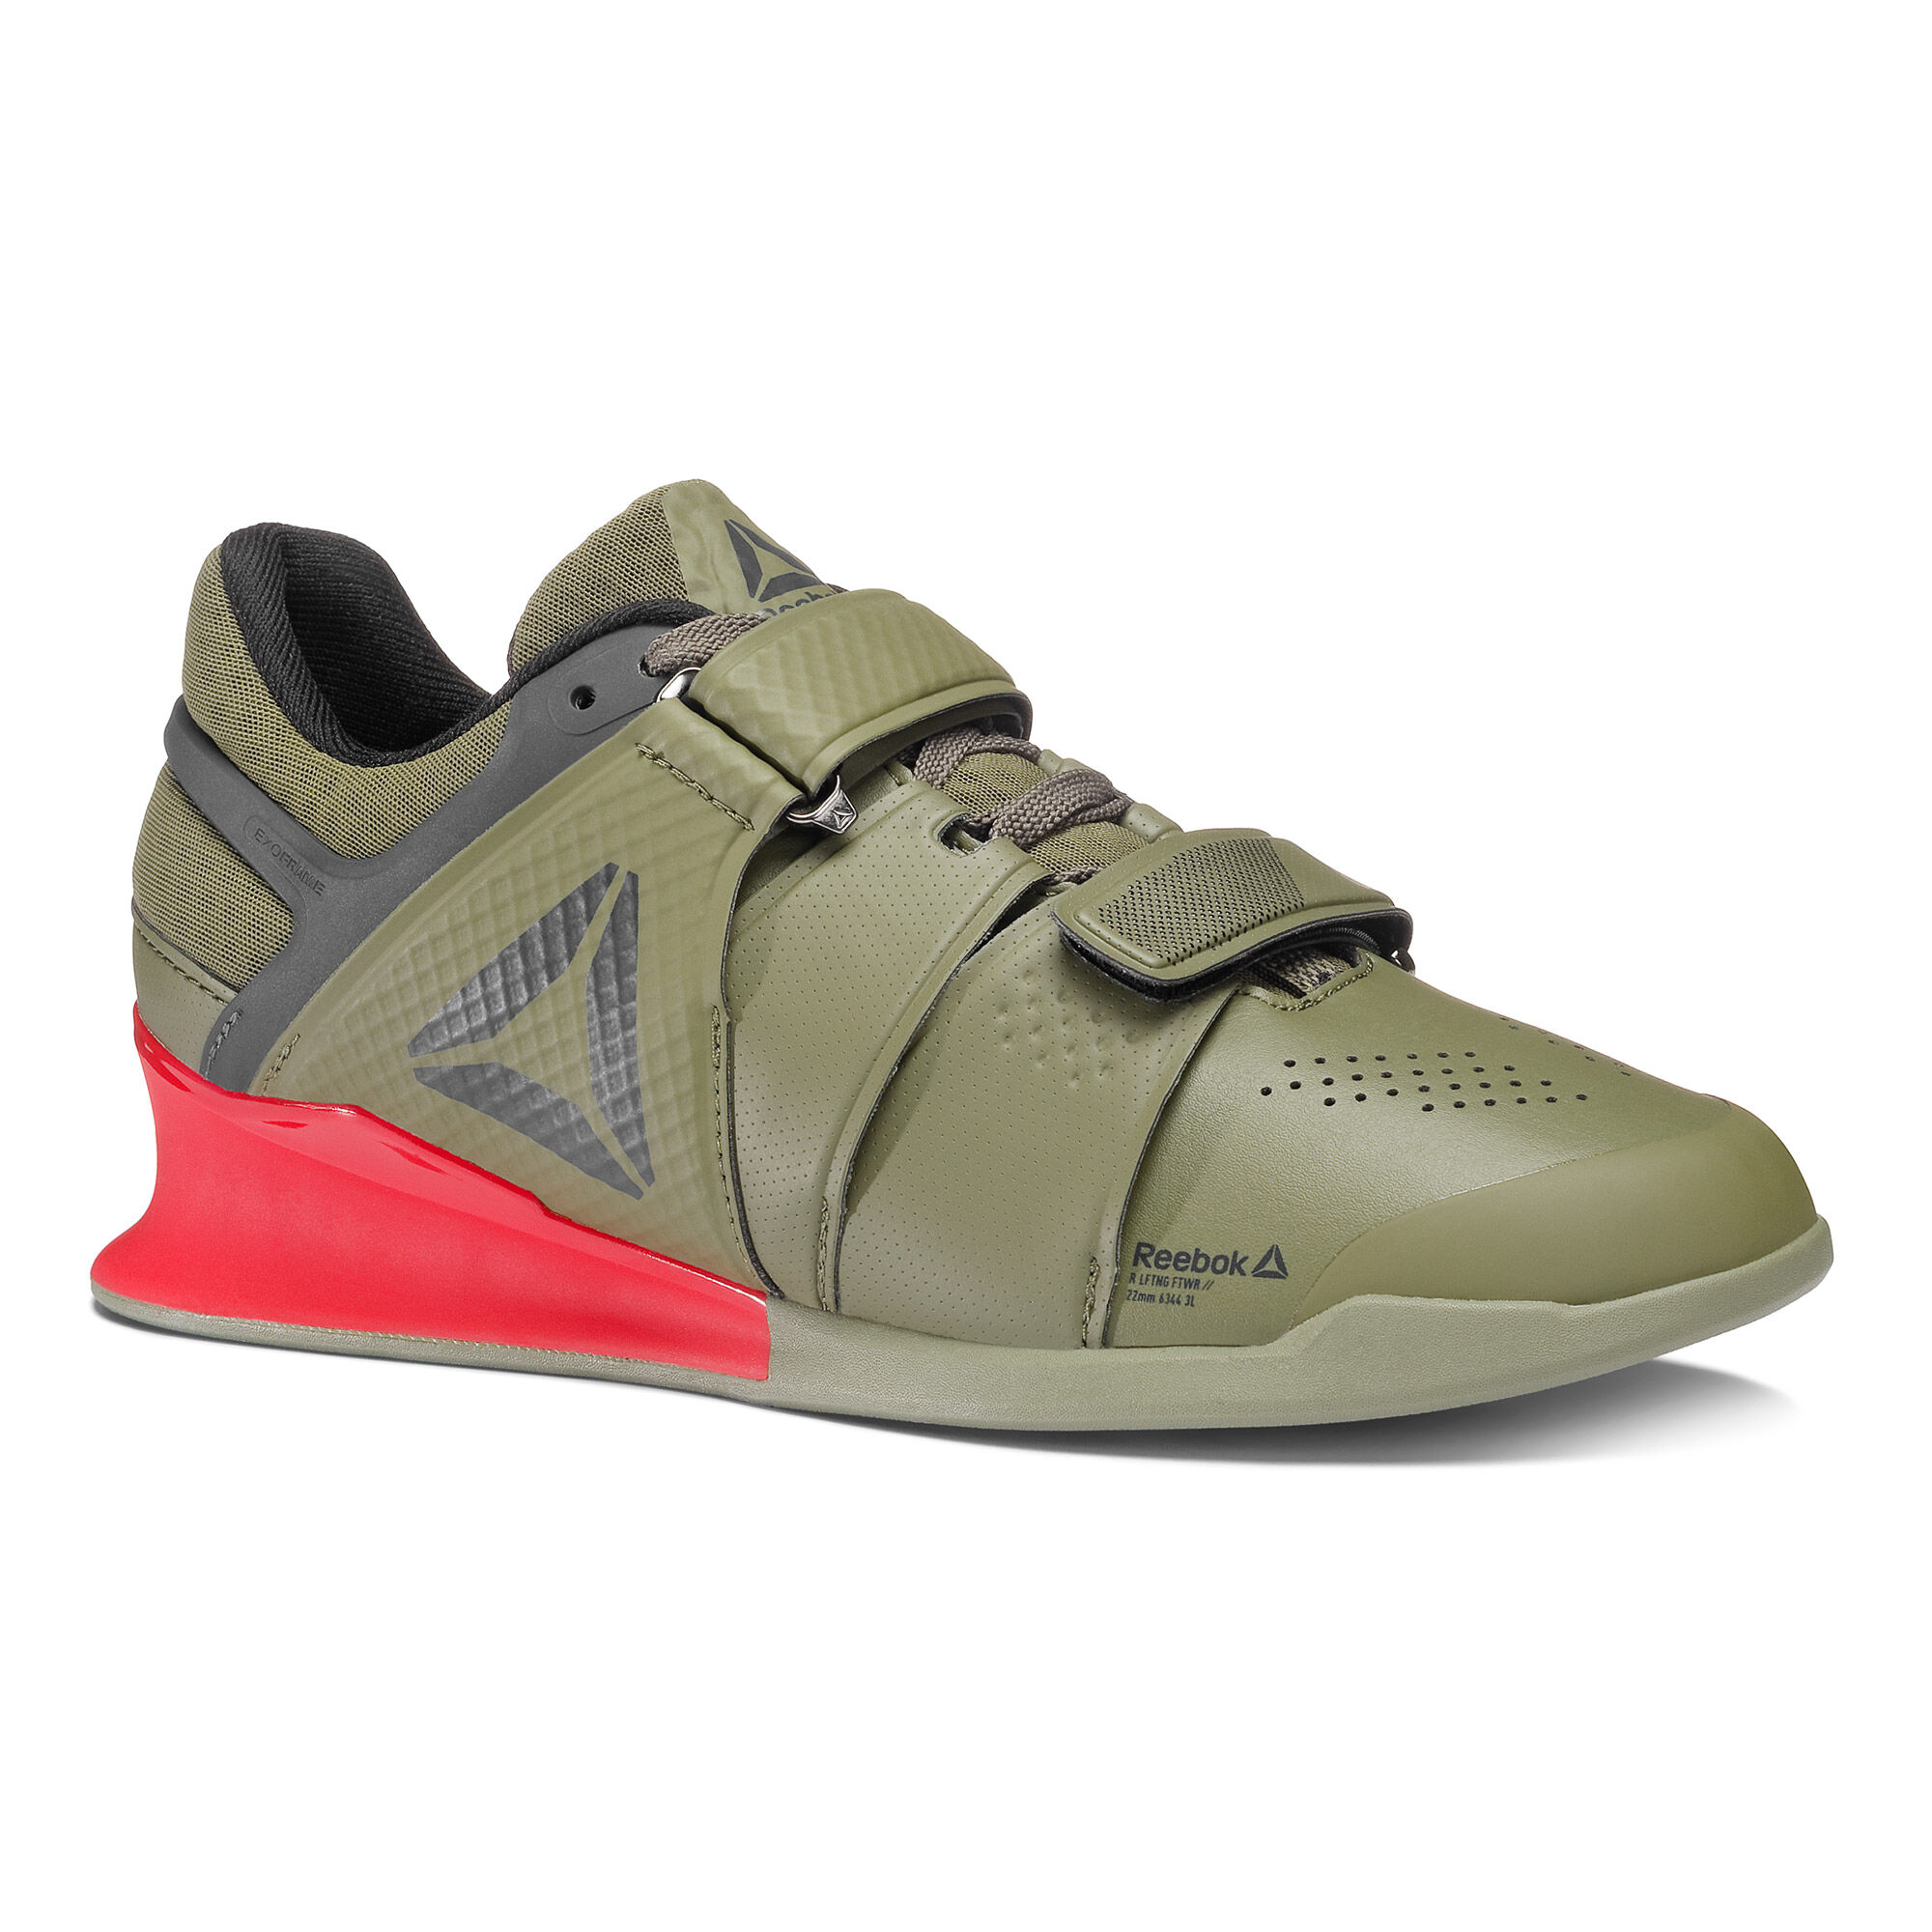 f72e52fb5ab crossfit trainers reebok cheap   OFF54% The Largest Catalog Discounts